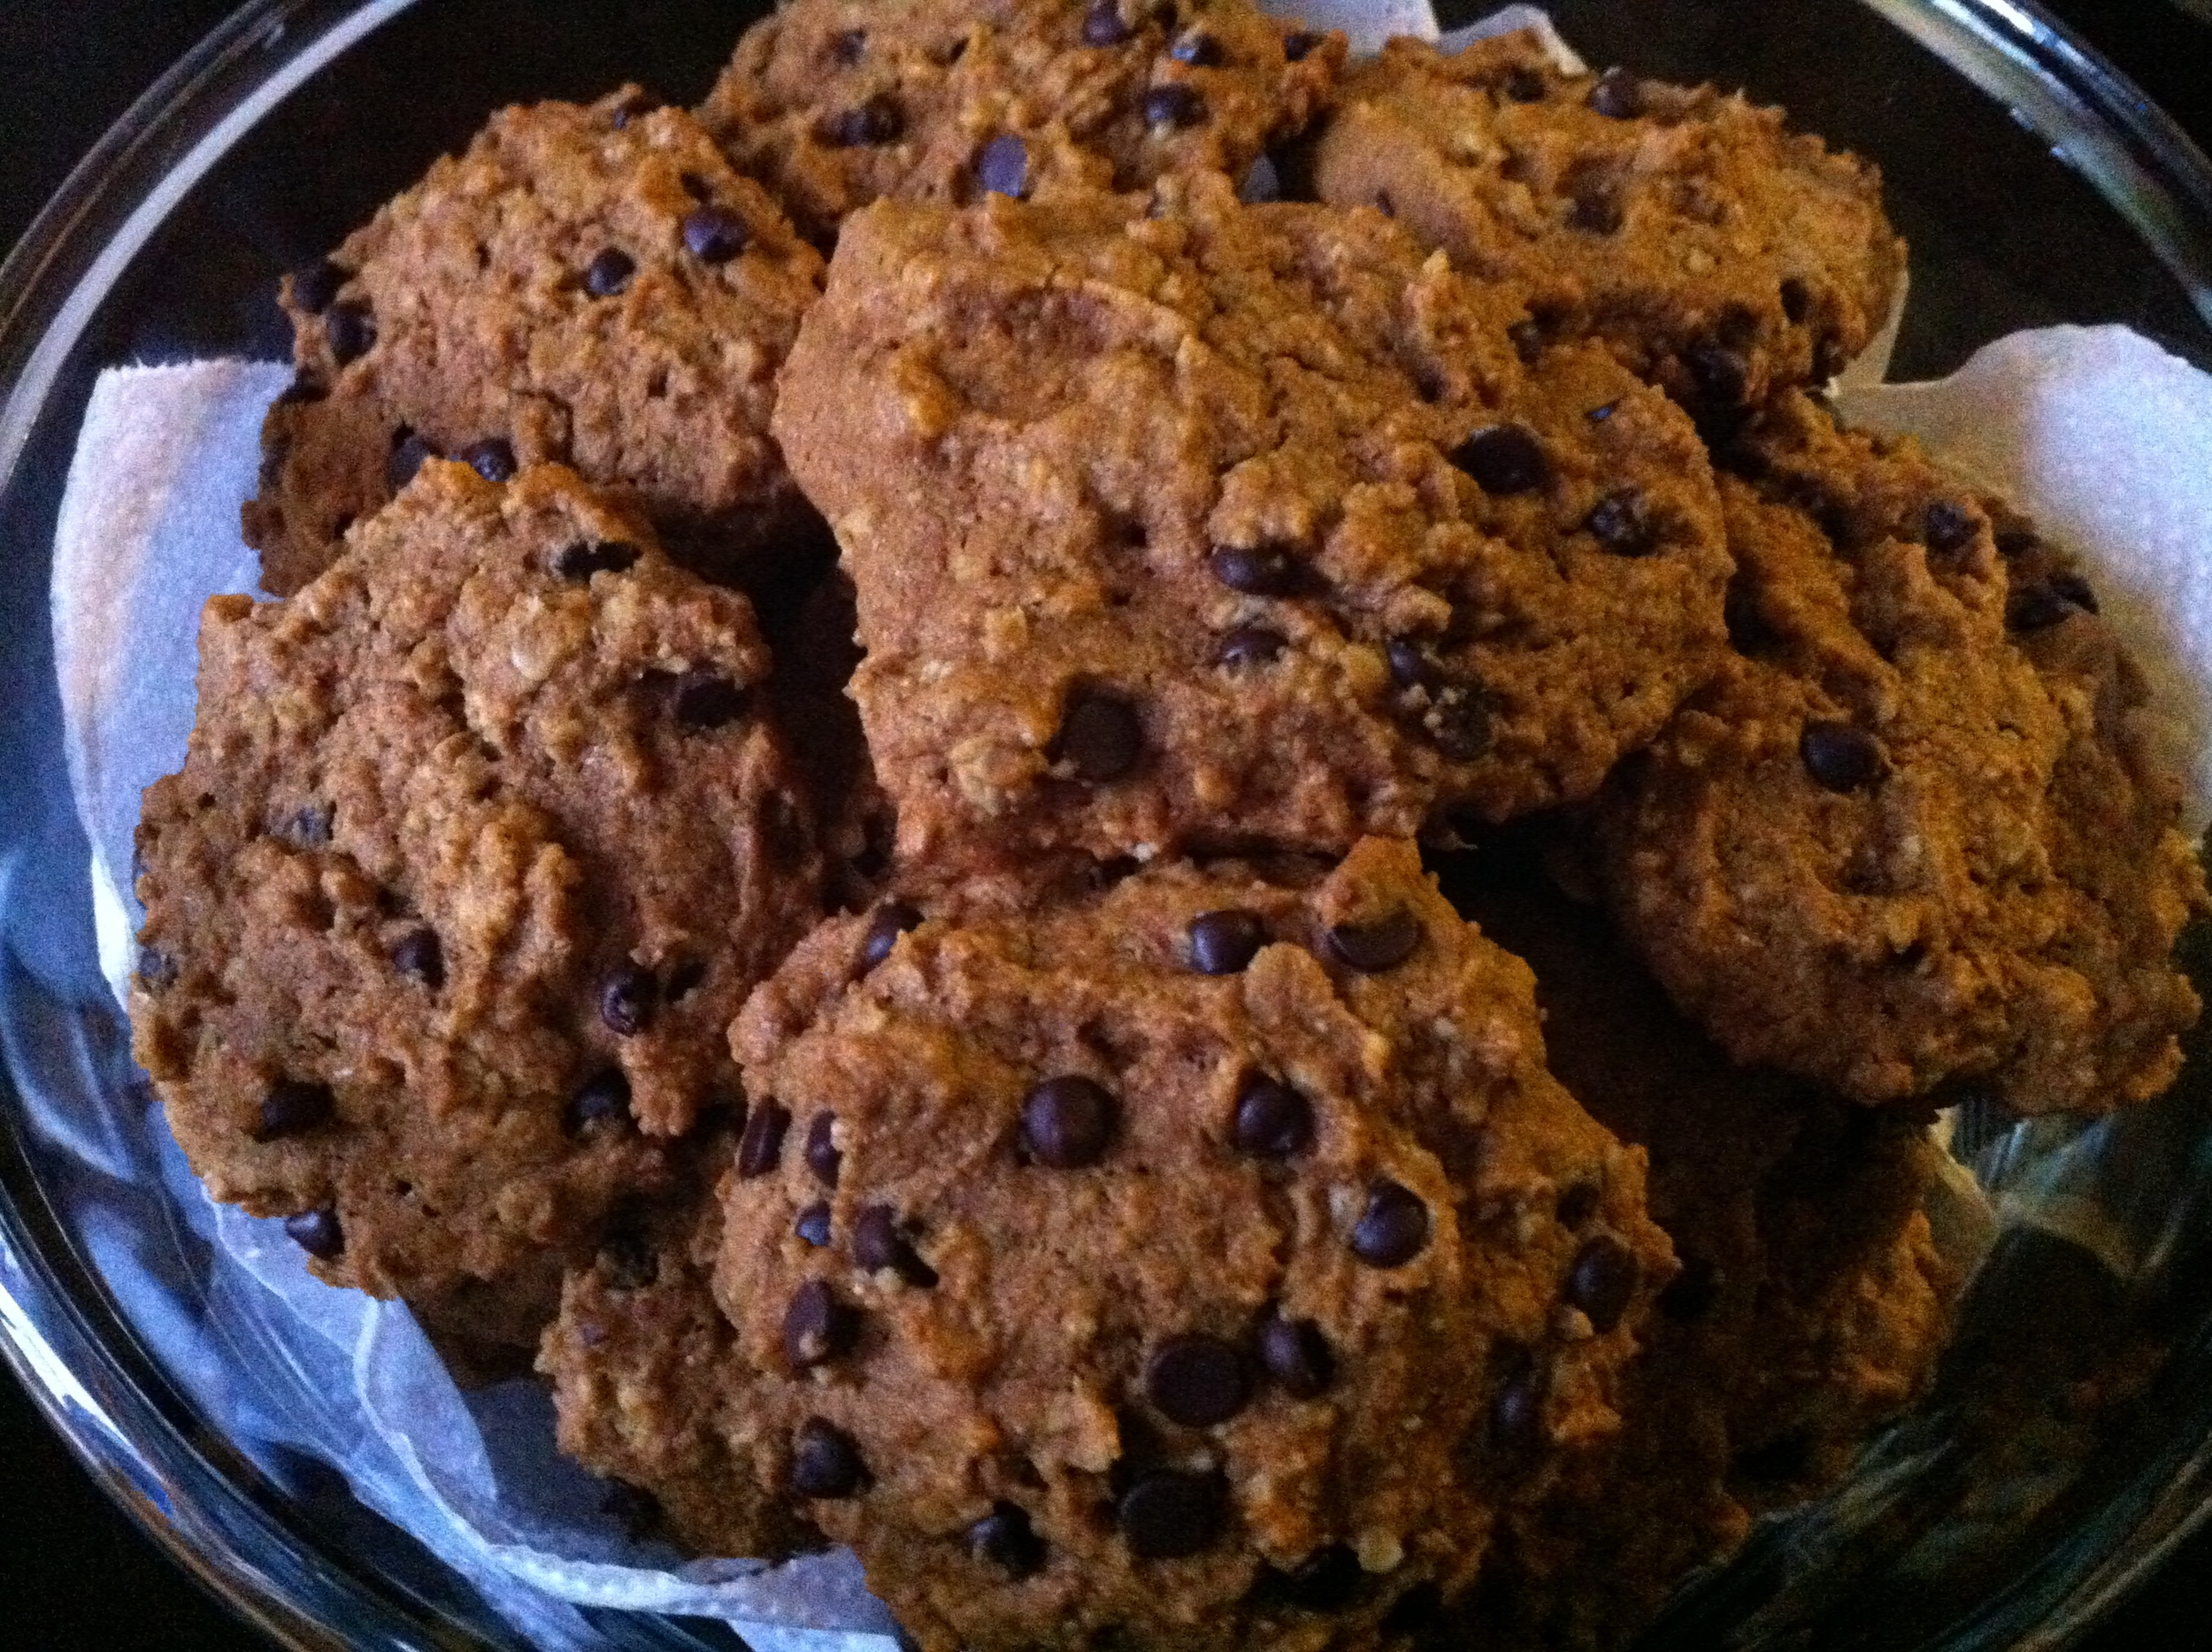 Vegan Pumpkin Oat Chocolate Chip Cookies ready to eat.